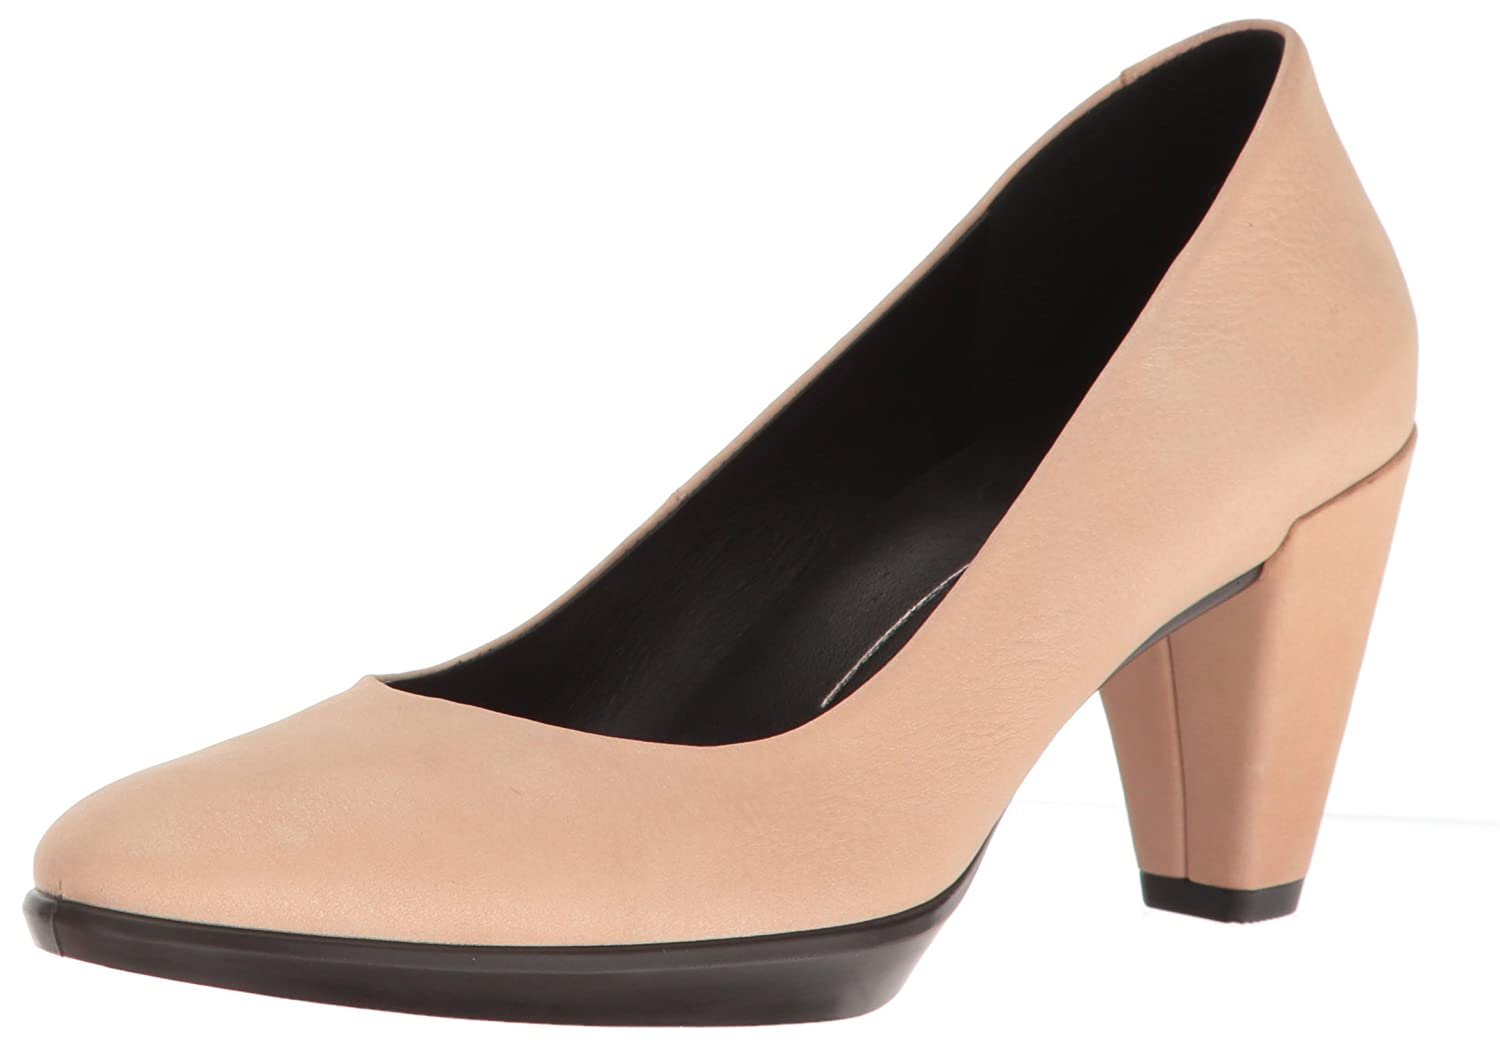 ECCO Women's Shape 55 Plateau Dress Pump B01END6CY2 37 EU/6-6.5 M US|Powder